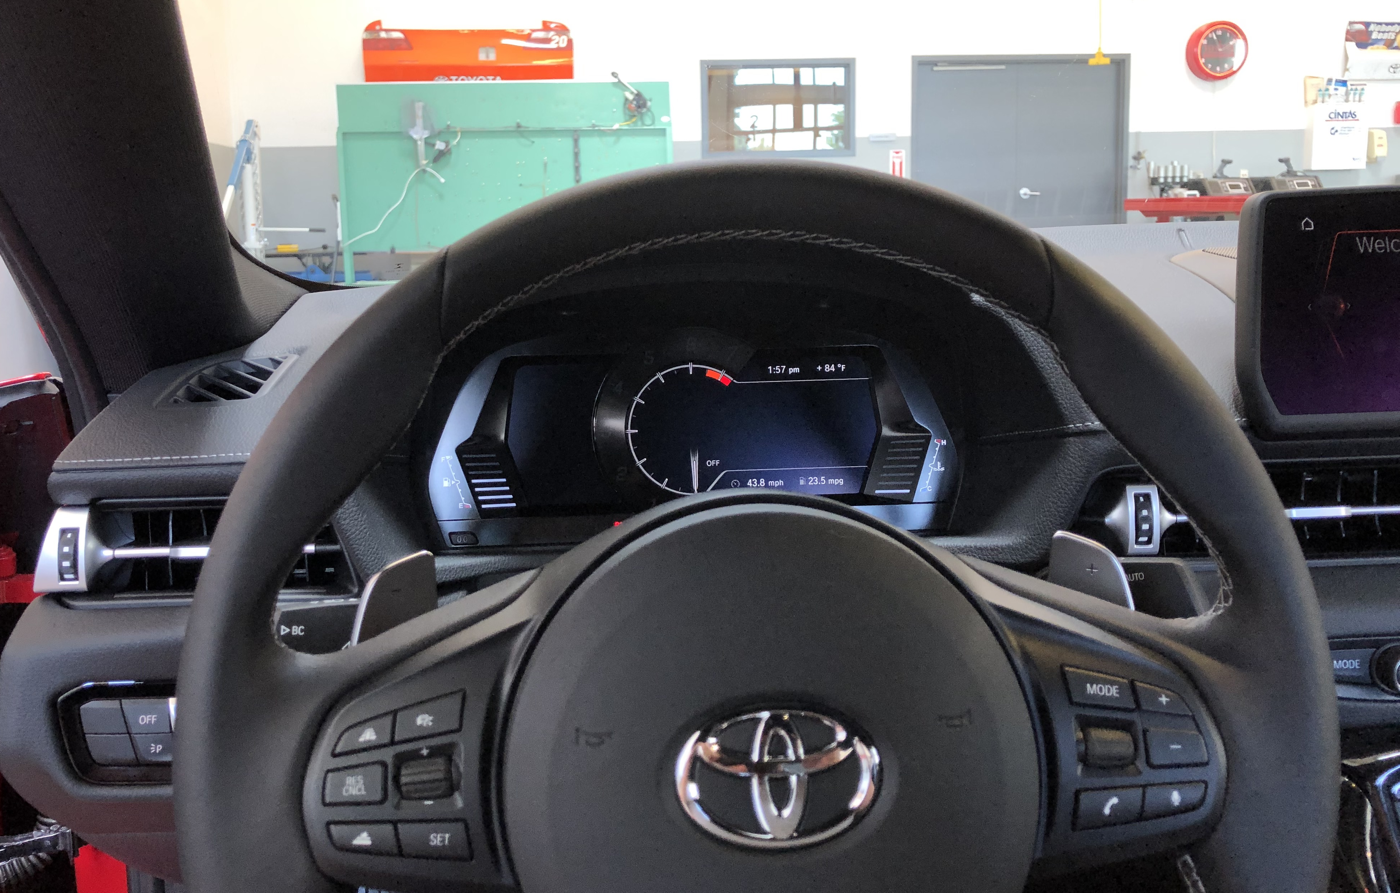 2020 Toyota Supra Steering wheel view KC Supra Test